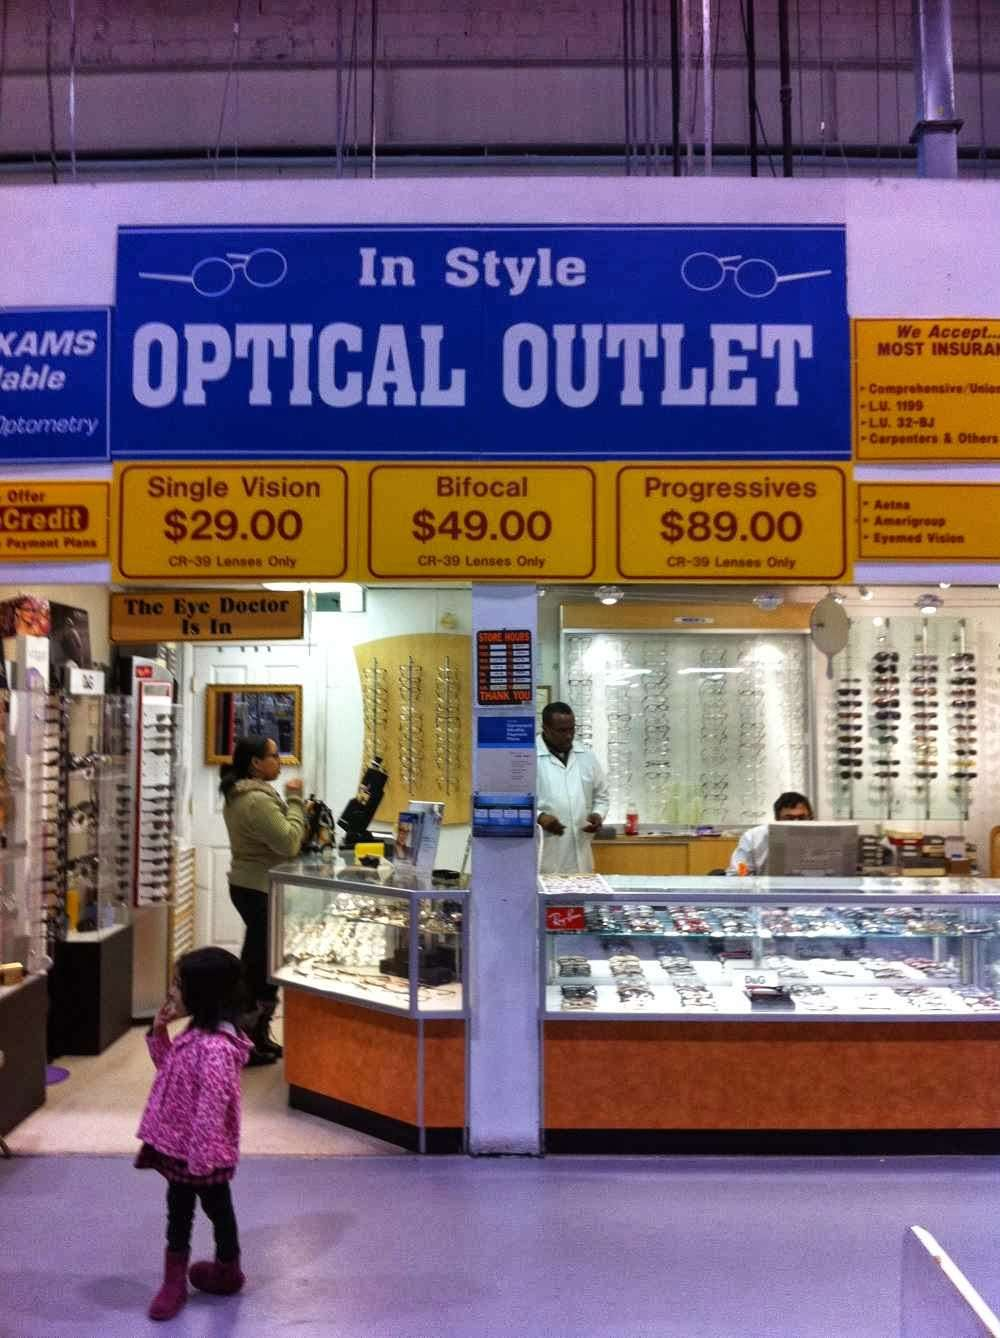 Instyle Optical Outlet - store  | Photo 1 of 1 | Address: 370 Essex St, Lodi, NJ 07644, USA | Phone: (201) 712-1990